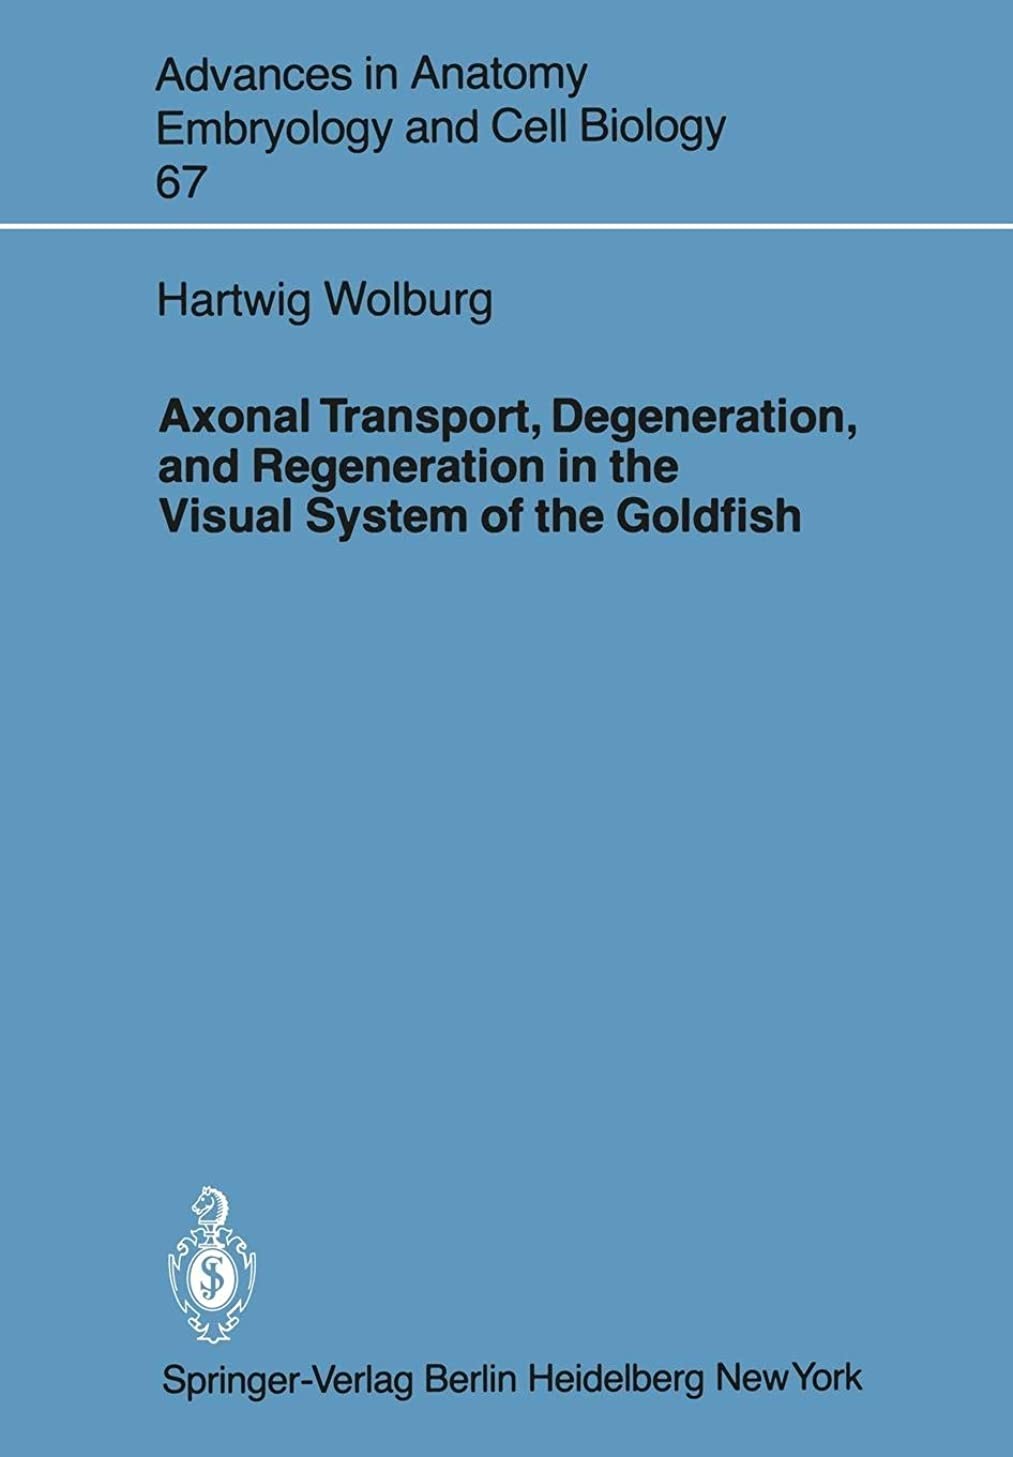 Axonal Transport, Degeneration, and Regeneration in the Visual System of the Goldfish (Advances in Anatomy, Embryology and Cell Biology)